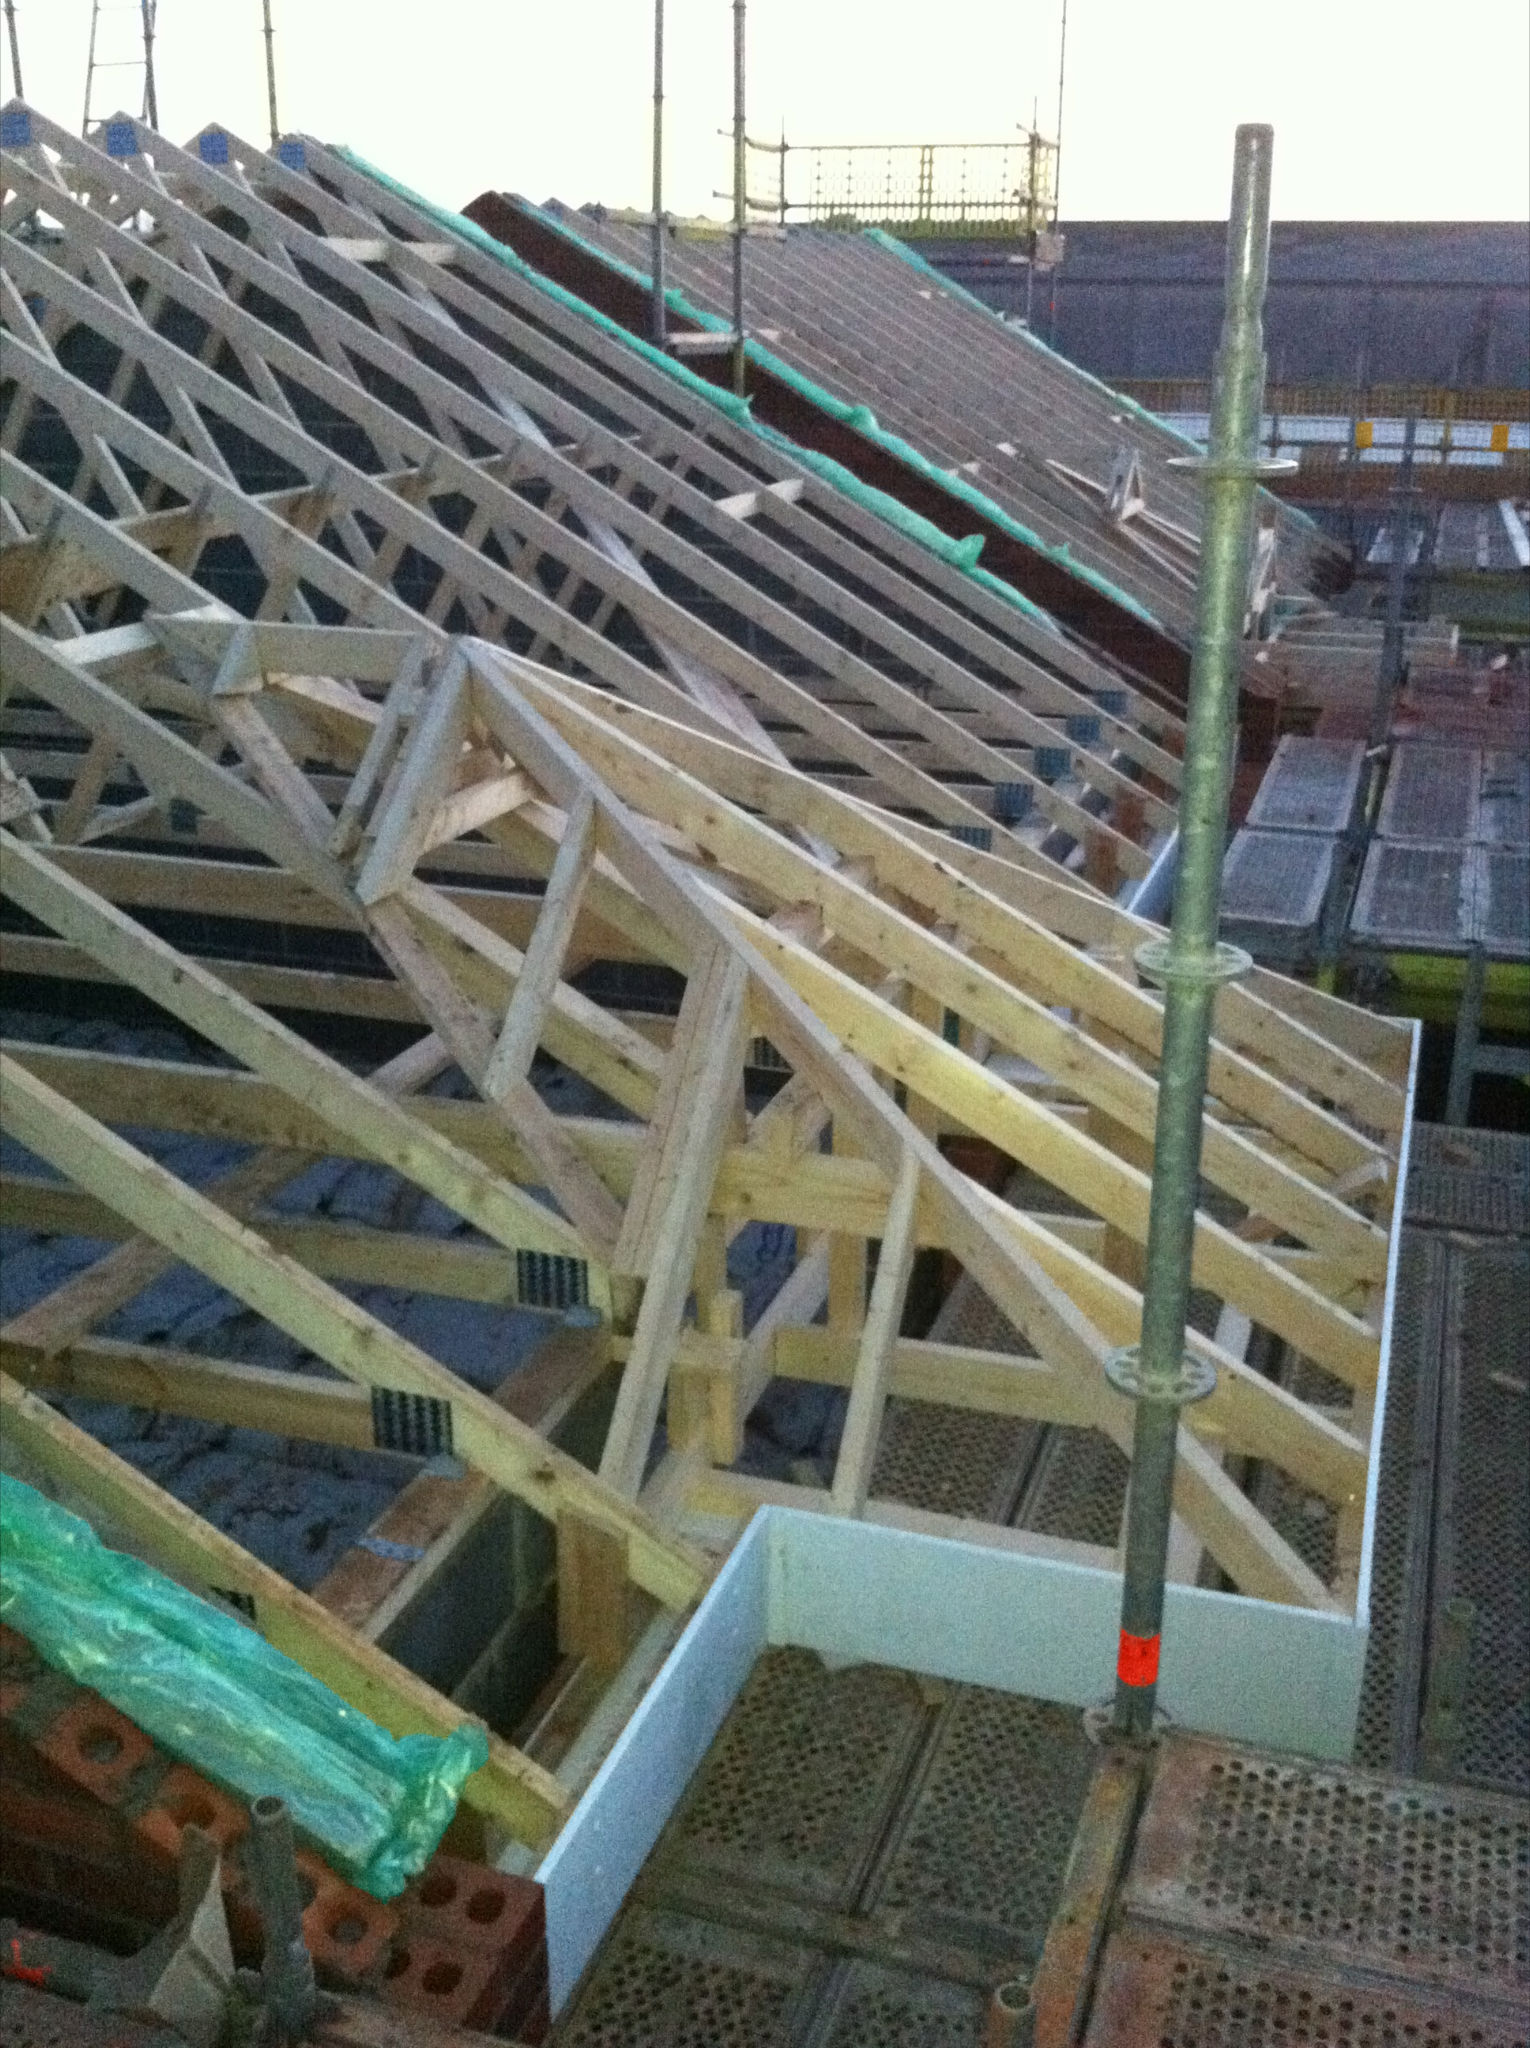 Low Level Roof Truss Roof Work With Traditional Bay Window .